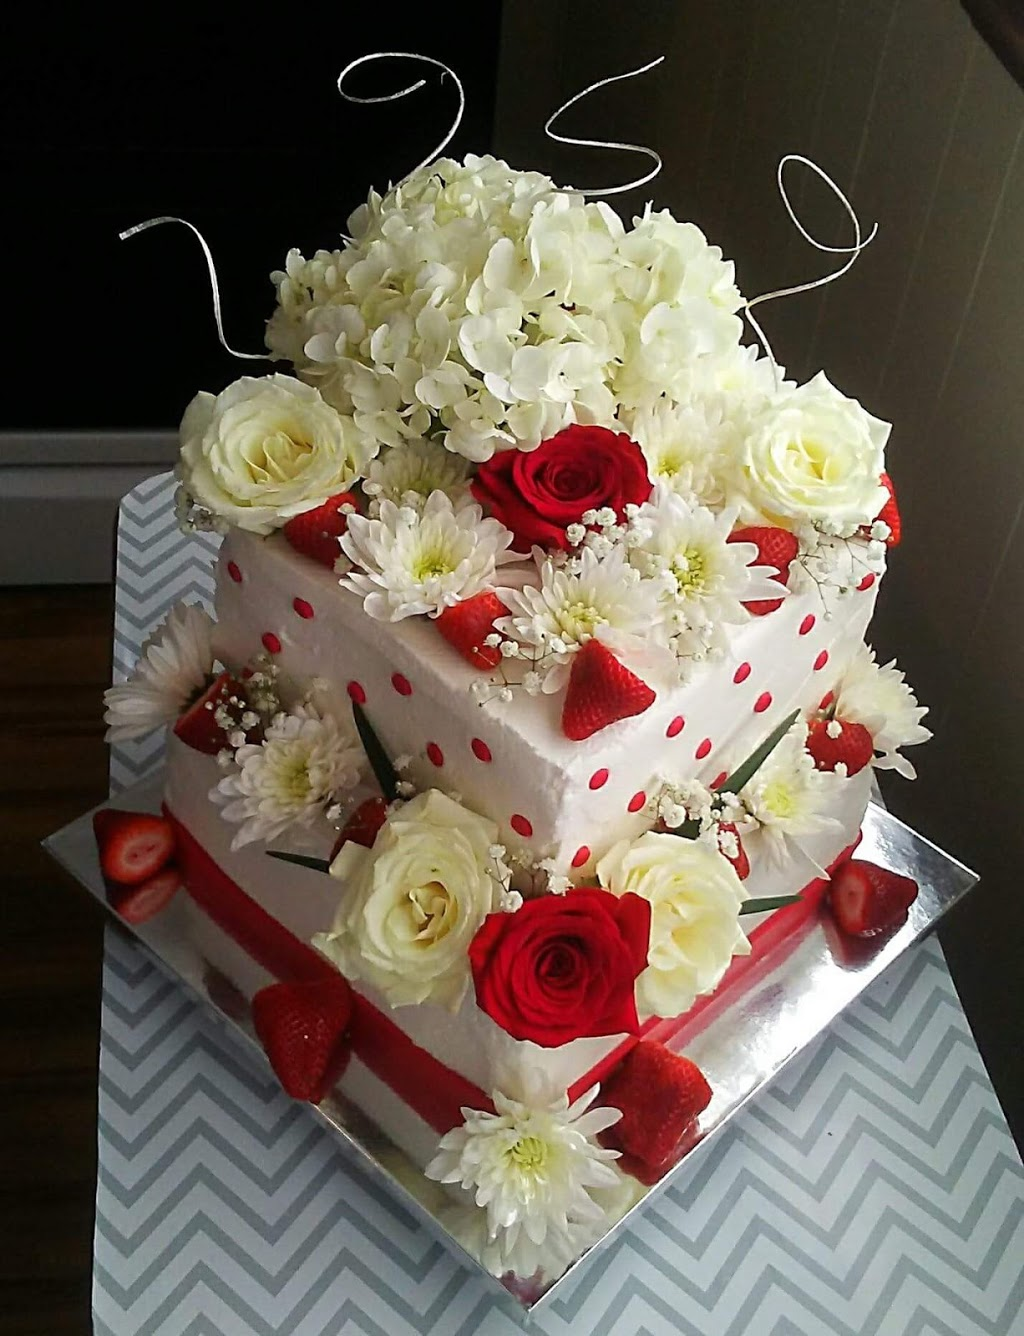 Malizzi Cakes & Pastries - bakery  | Photo 4 of 10 | Address: 1203 Old Swede Rd, Douglassville, PA 19518, USA | Phone: (610) 689-8034